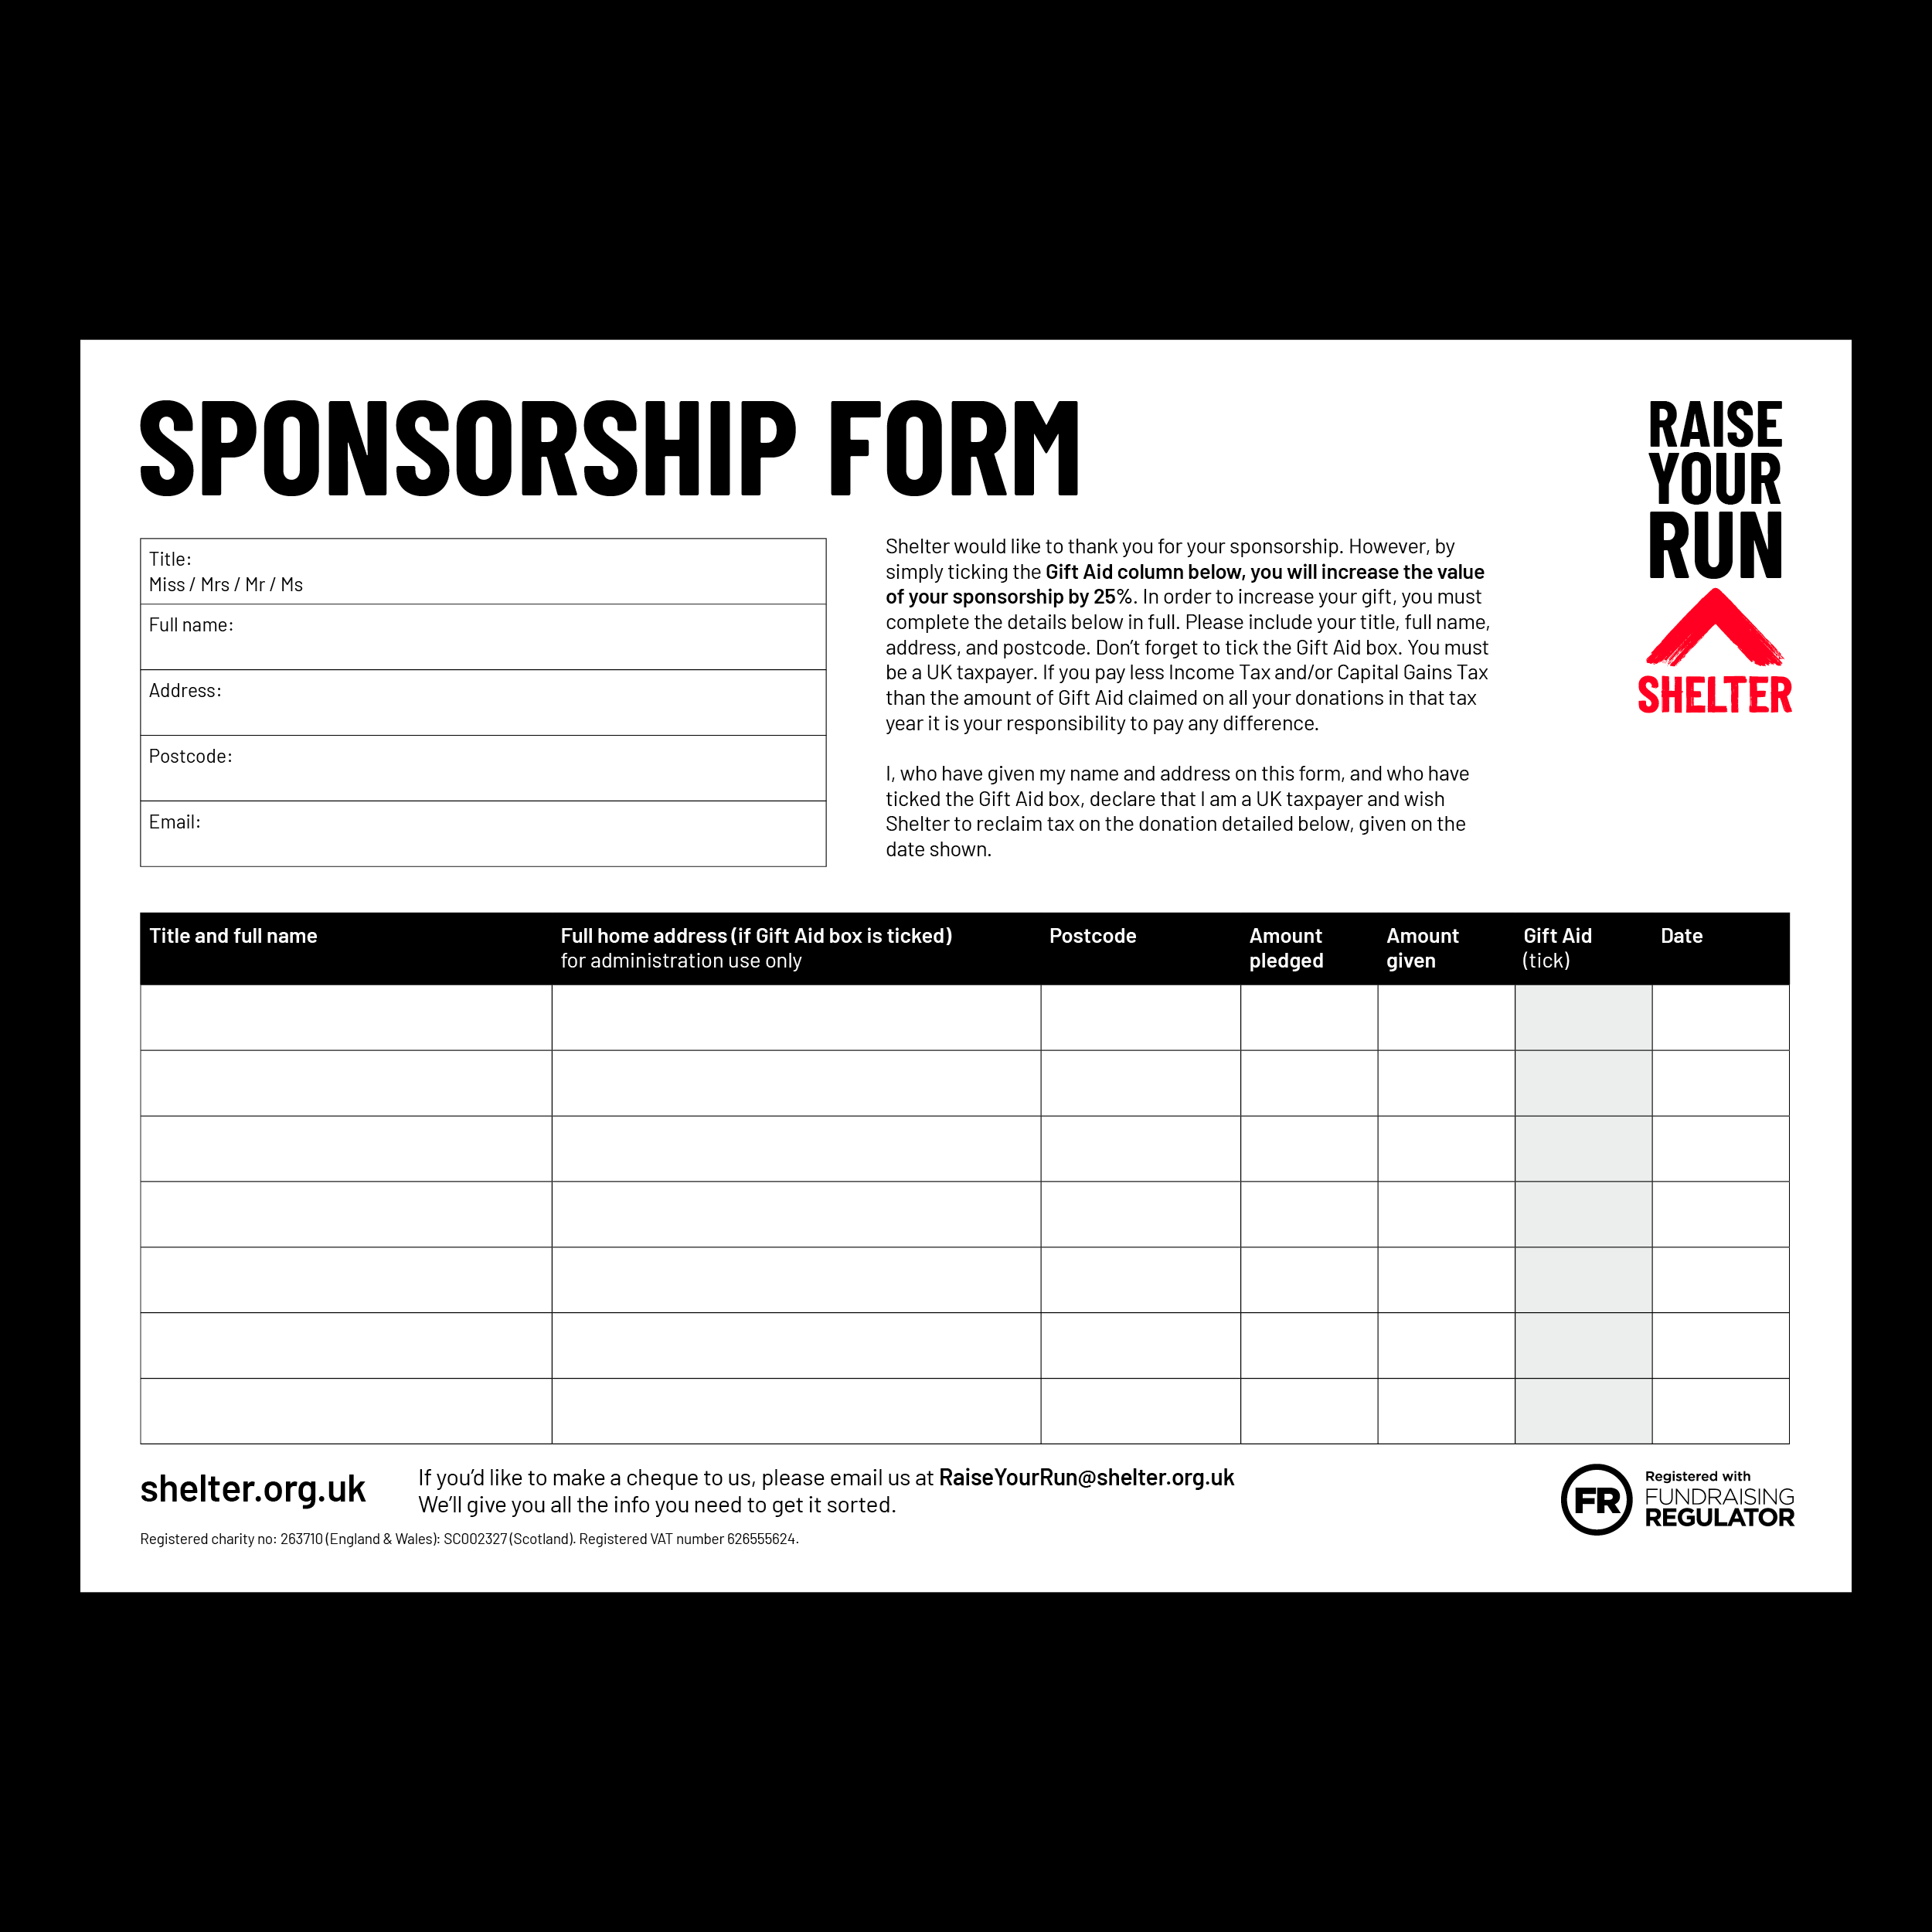 Preview image of the sponsorship form